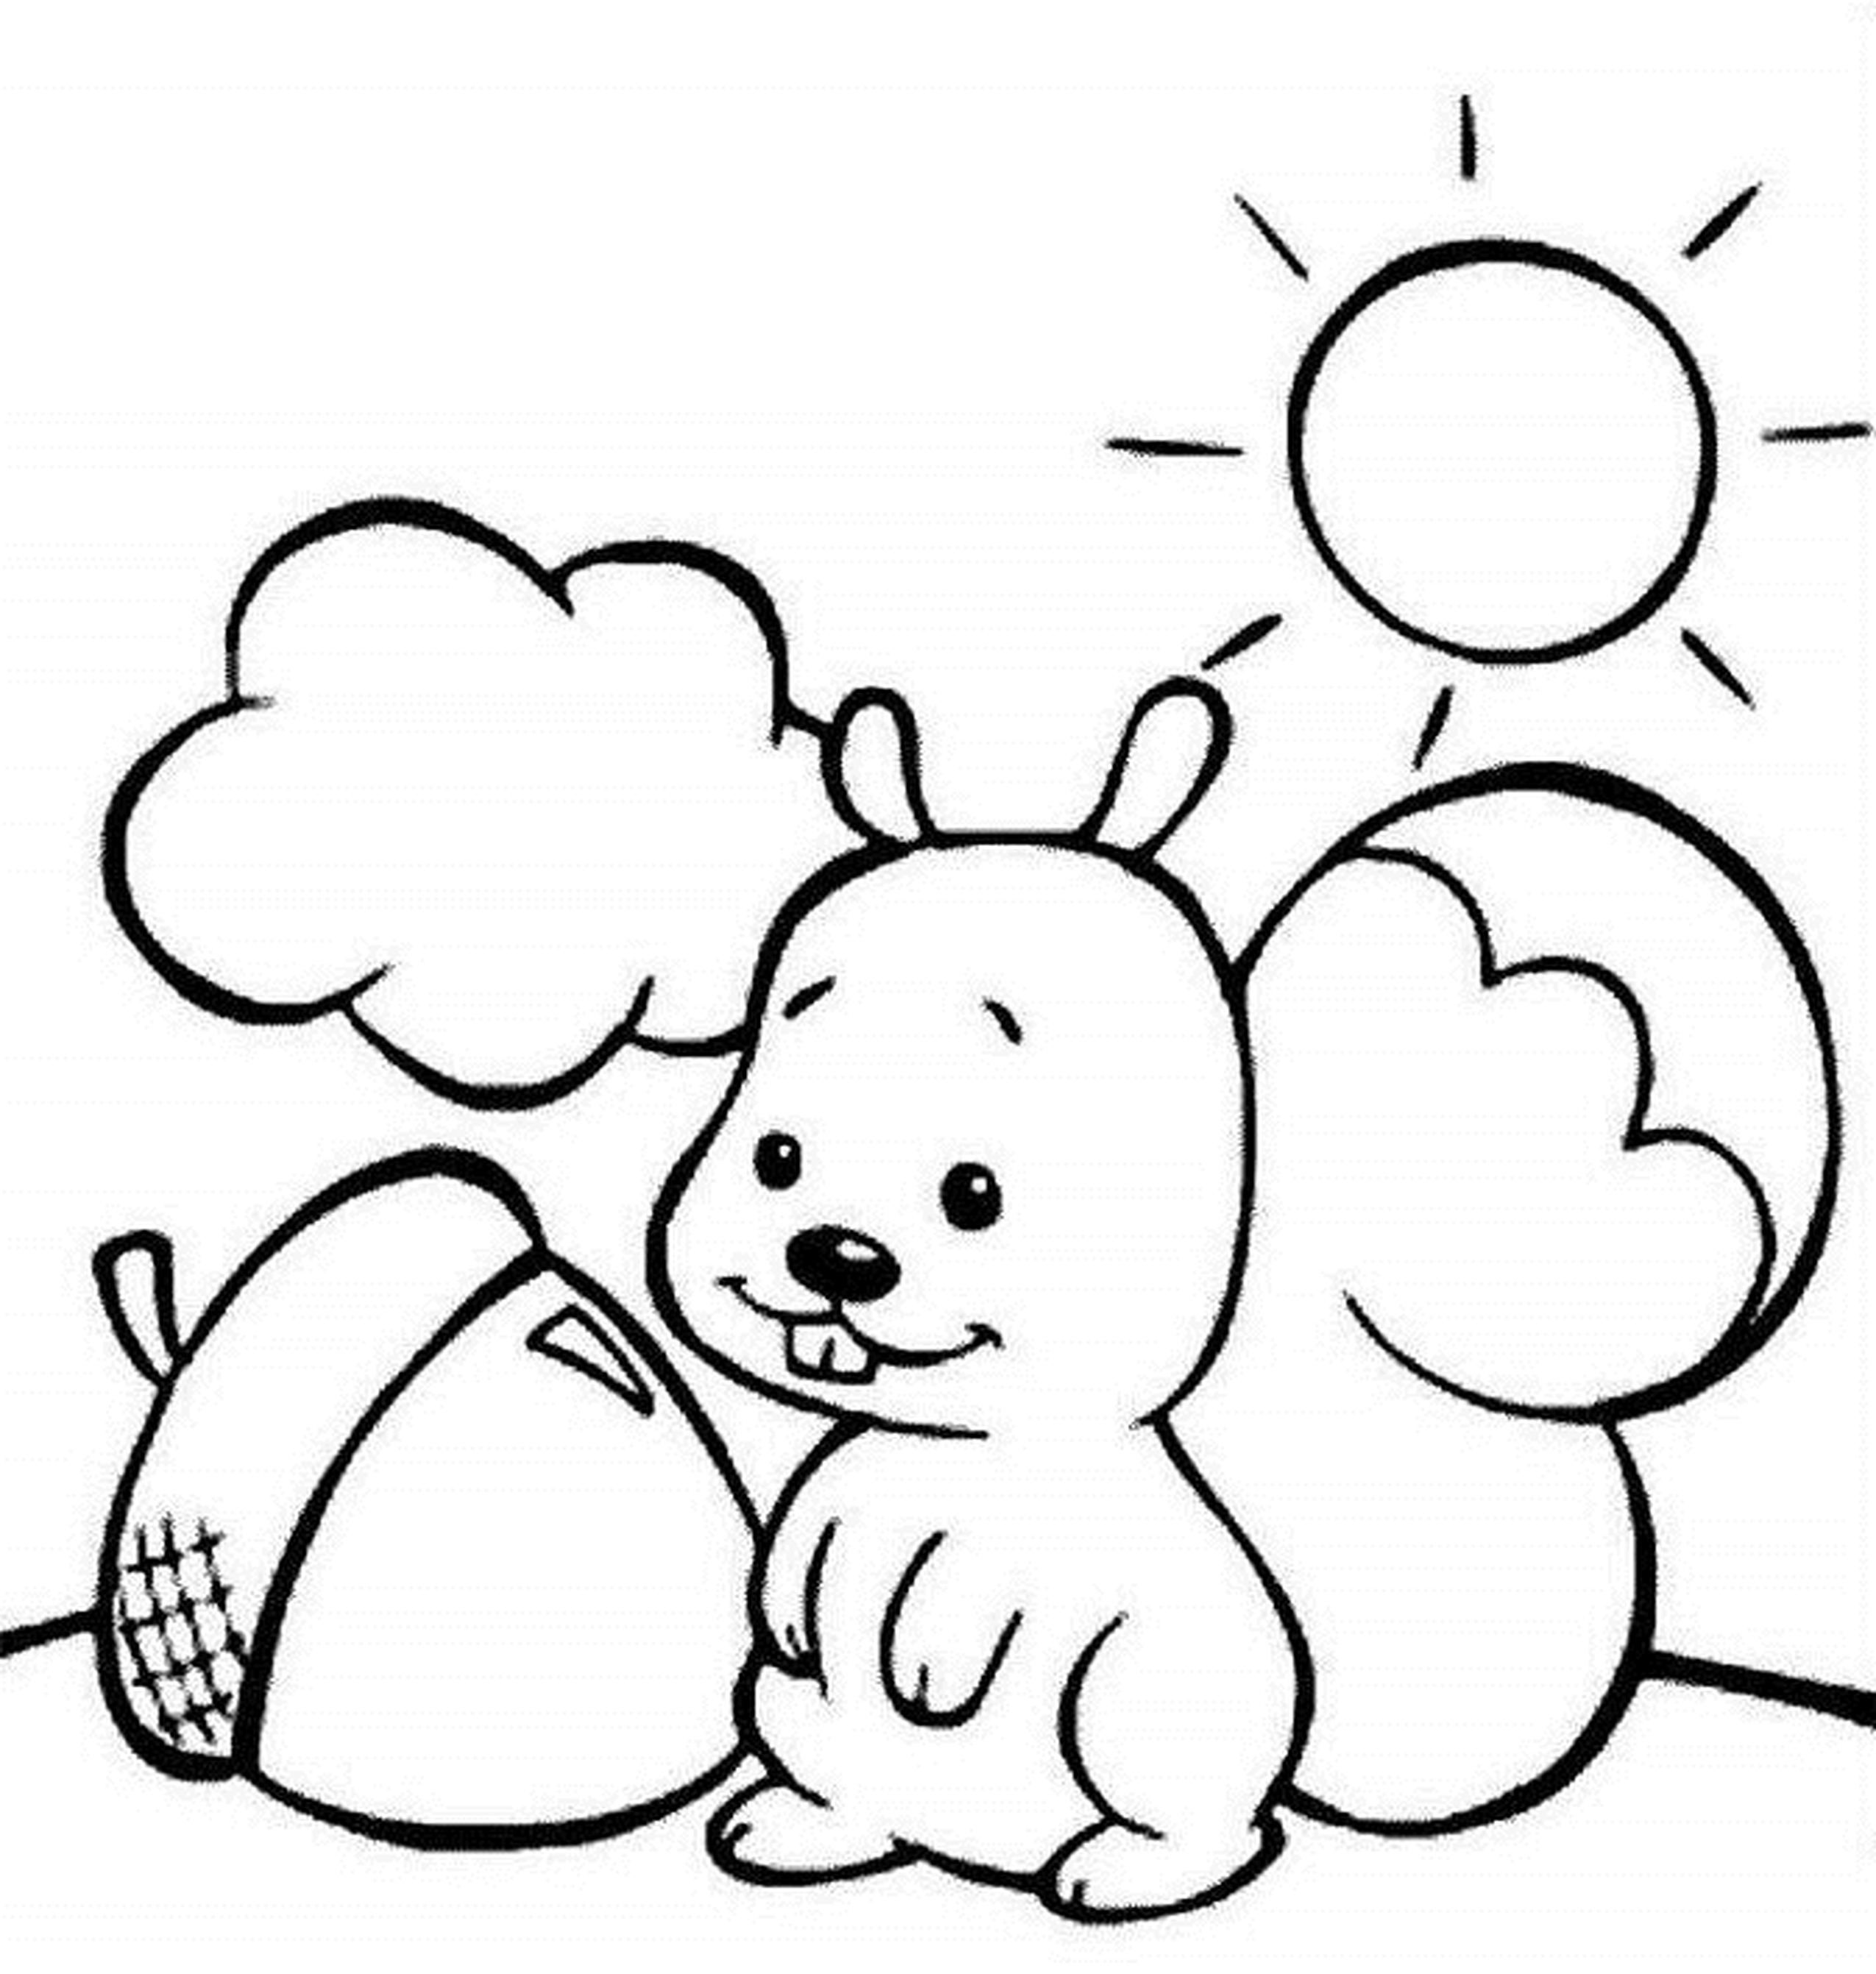 Coloring Pages: Free Printable Fruit Coloring Pages For Kids, Cute ...